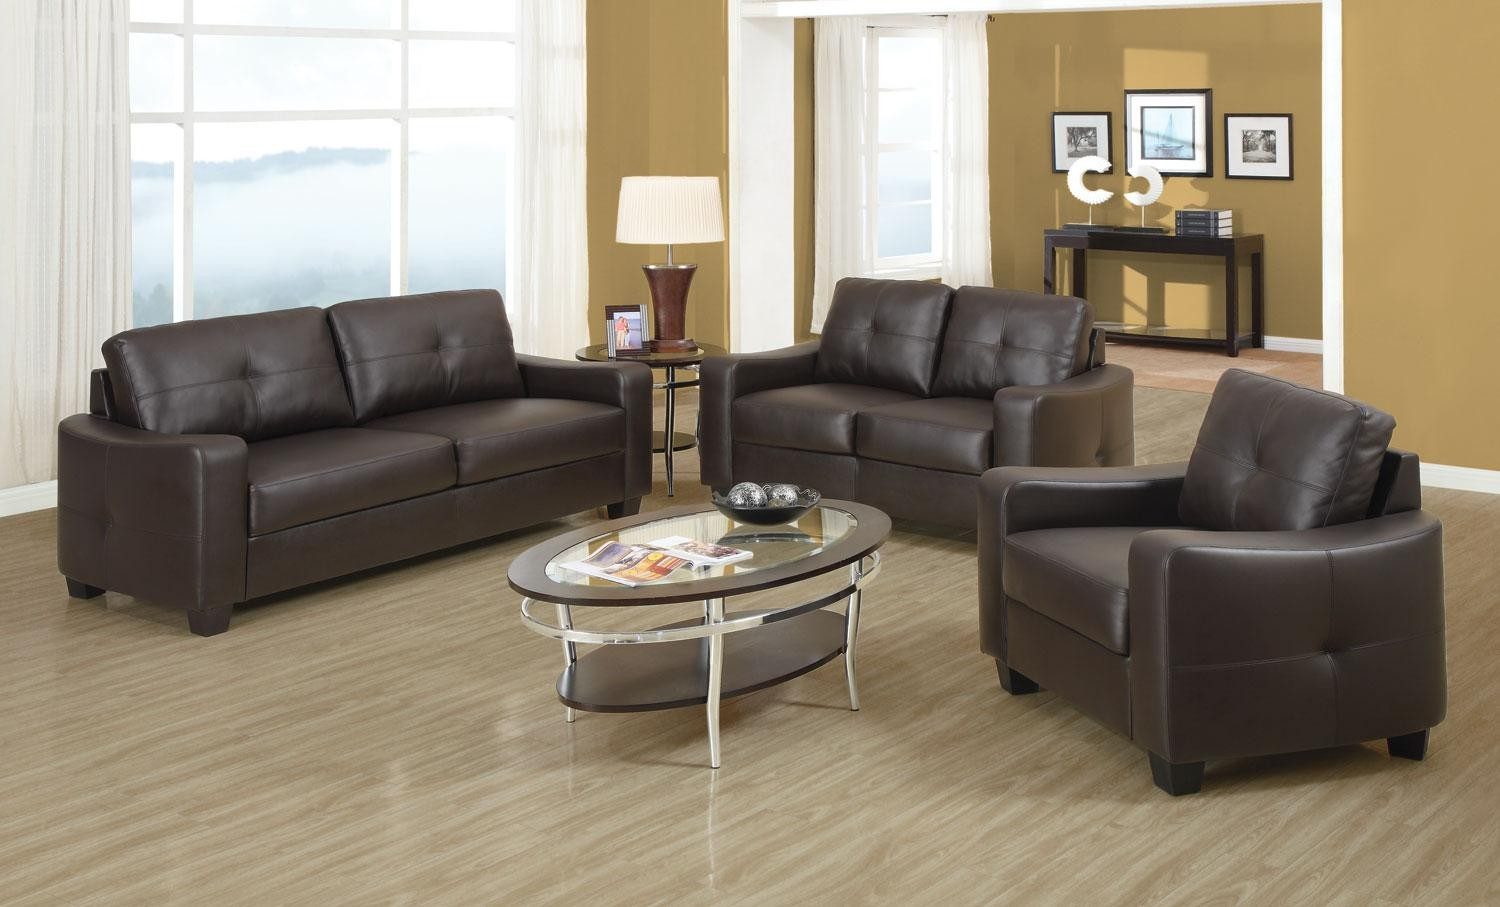 Leather Living Jasmine Brown Bonded Leather Living Room Set From Coaster